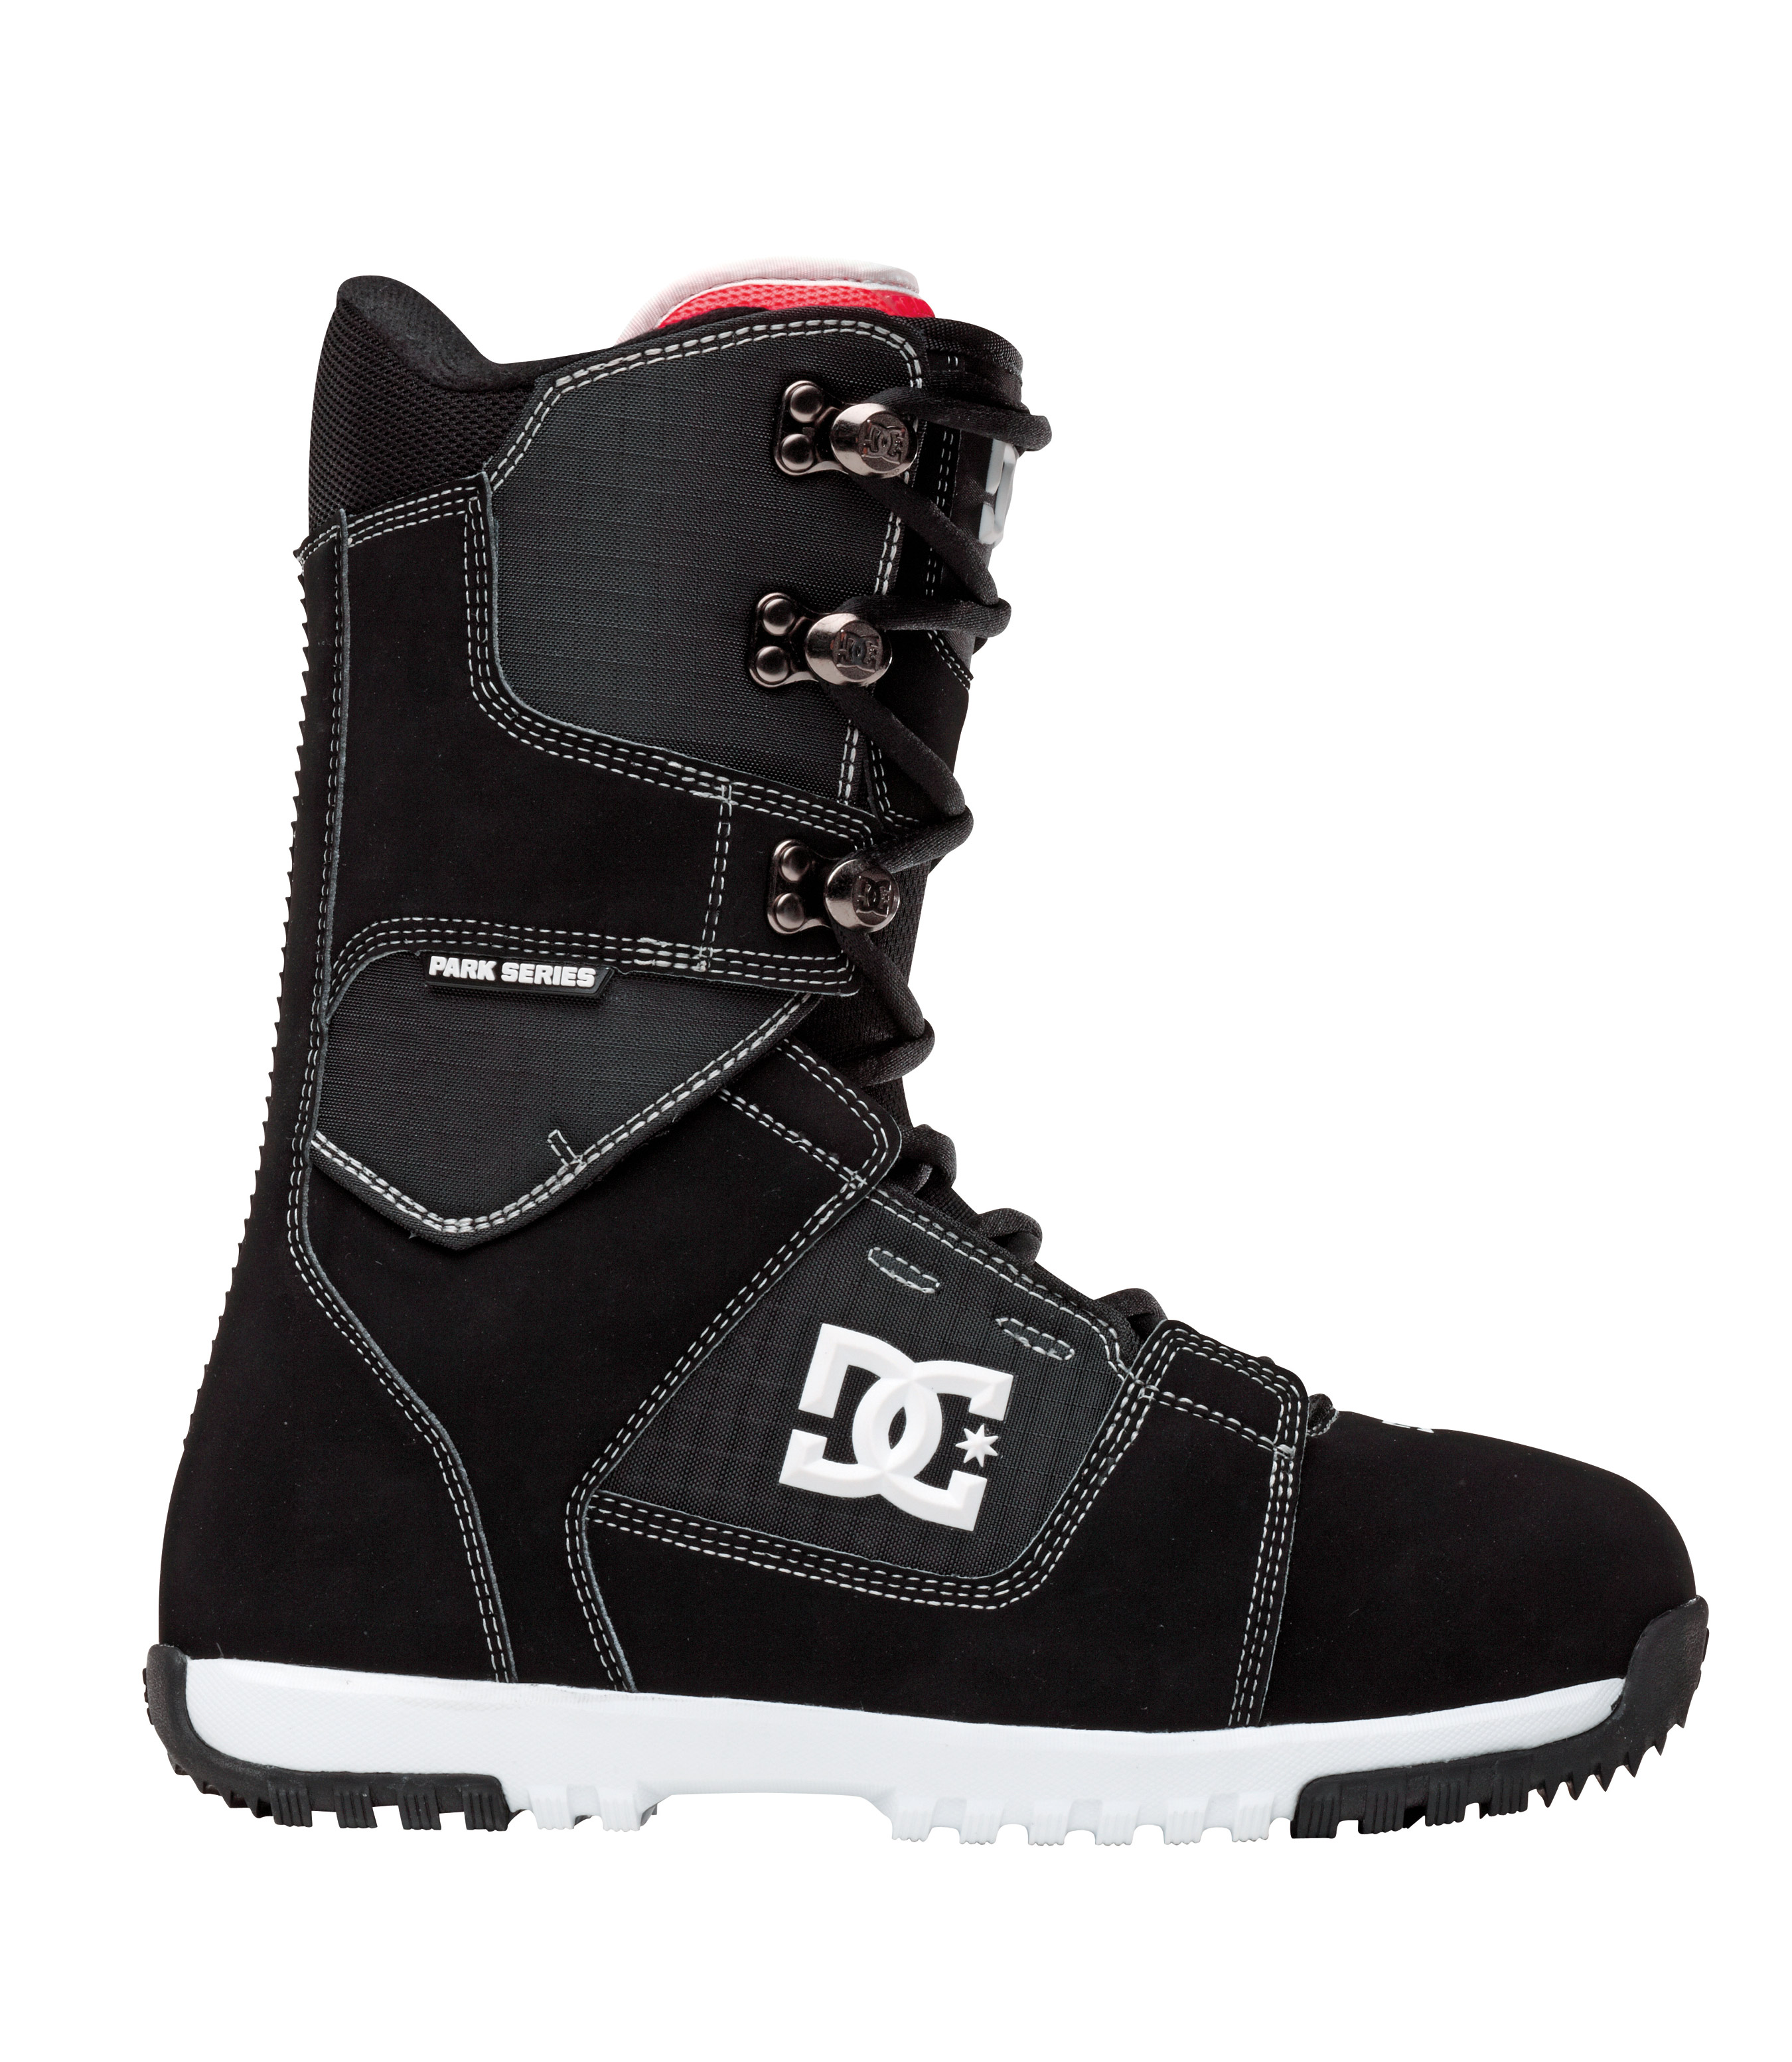 Snowboard The Park series shell and liner interface just got better. With the addition of AEROTECH you now have the best-articulated breathable boot. The boot and liner are a seamless fit. With more color than a double rainbow your bound to find one for your kit this season.Key Features of the DC Park Snowboard Boots: Direct power lacing Wraplock 3D tongue Articulation Molded backstay Unilite Park Bravo Liner Flex rating: 6 - $129.95